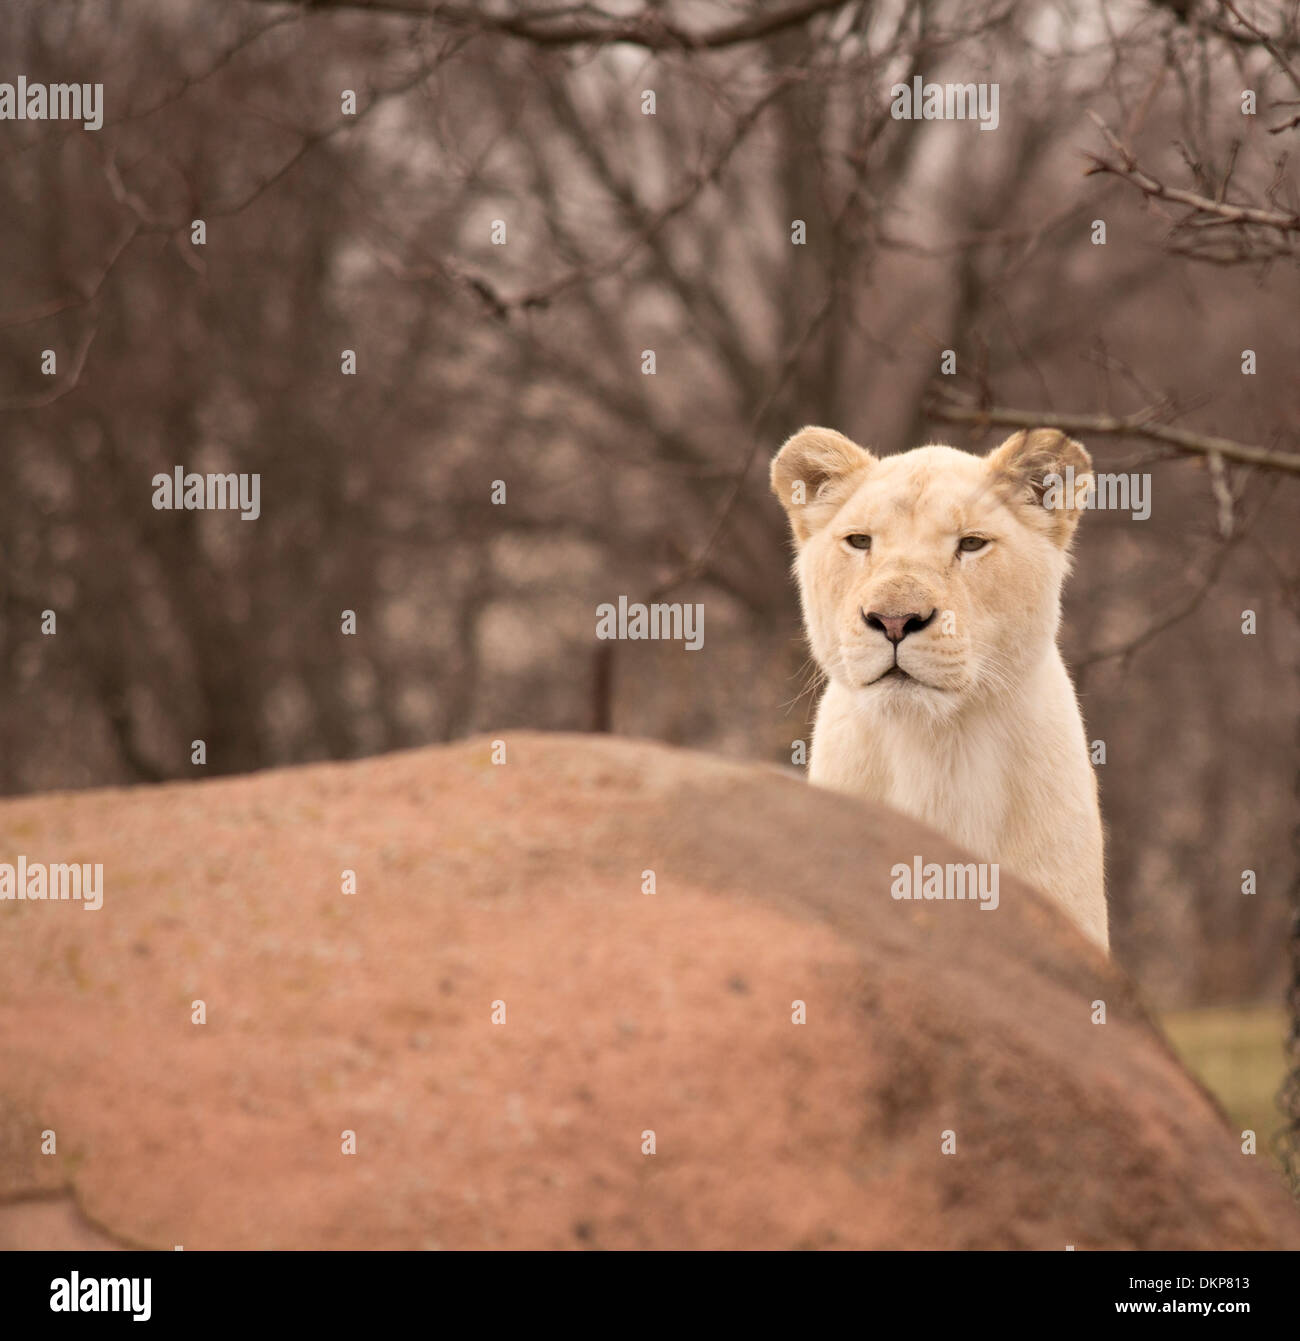 Panthera leo krugeri  White lion cub peers over a rock at the Toronto Zoo - Stock Image